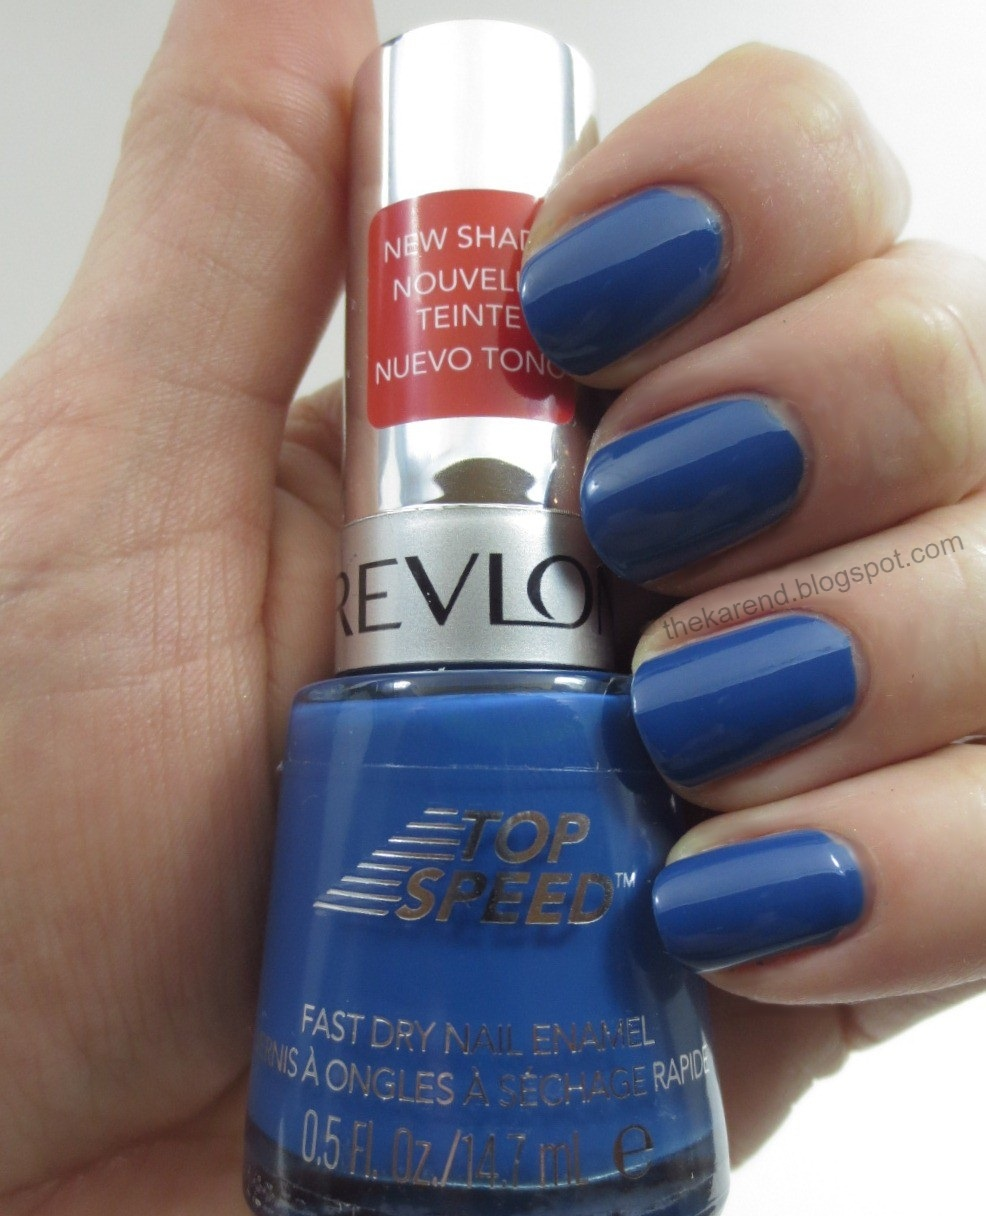 Frazzle and Aniploish: Revlon Top Speed Superstitious and Celestial FX